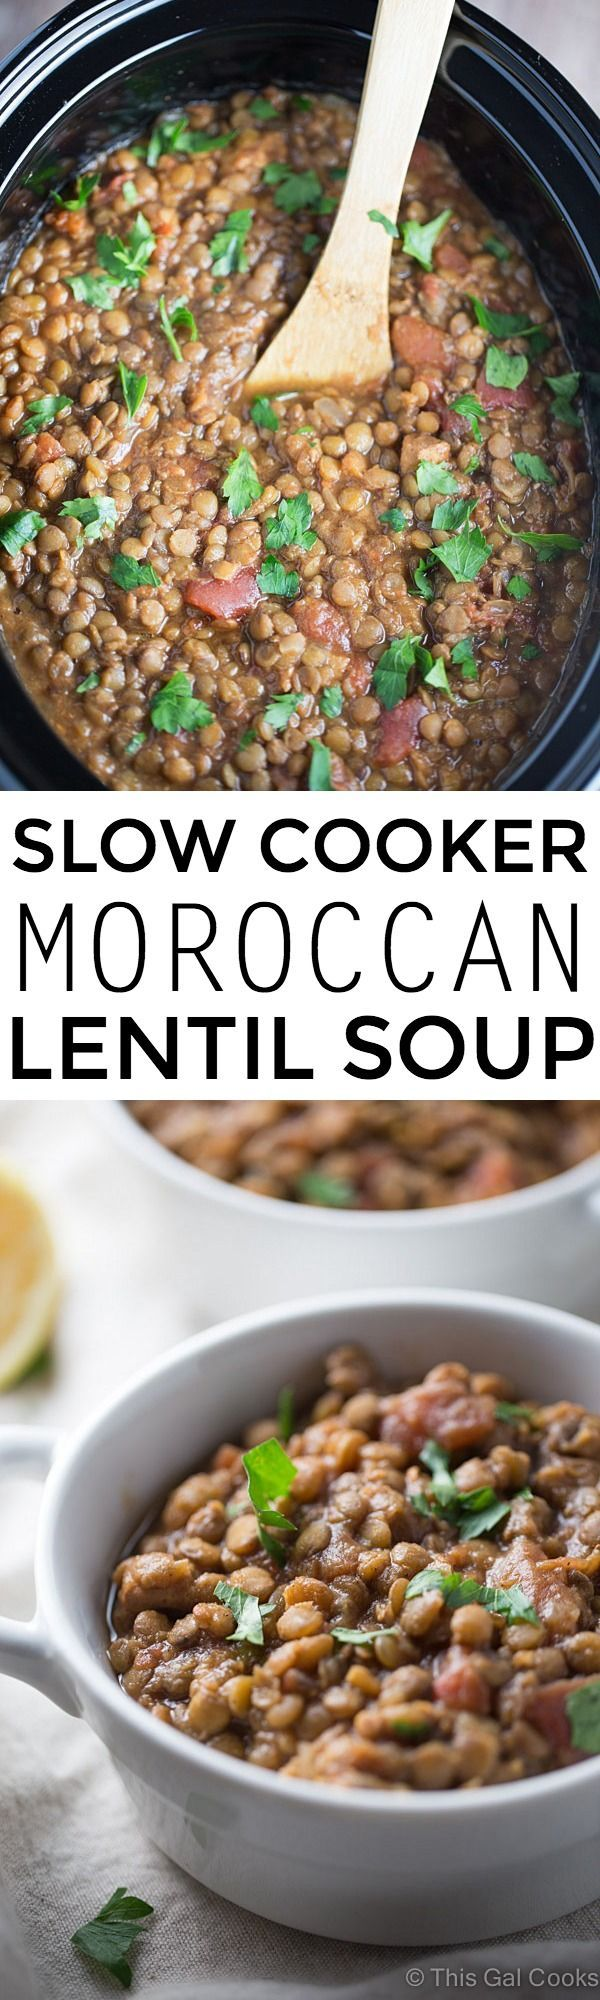 Slow Cooker Moroccan Lentil Soup. Under 300 calories per serving! #lunch #dinner #recipes